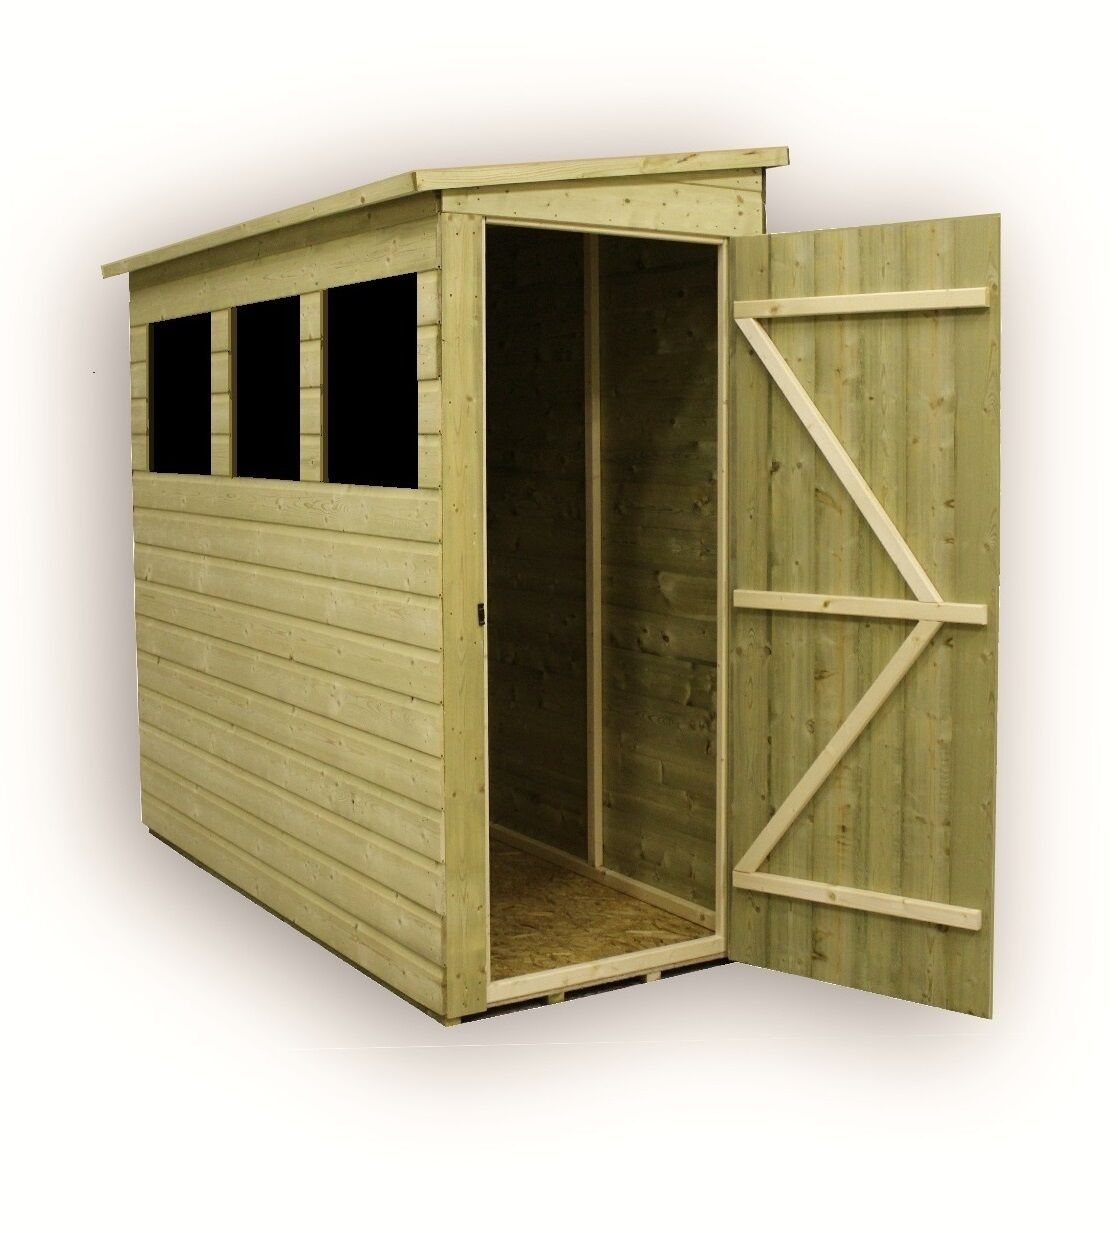 7x3 garden shed shiplap pent roof tanalised 3 windows low side pressure treated